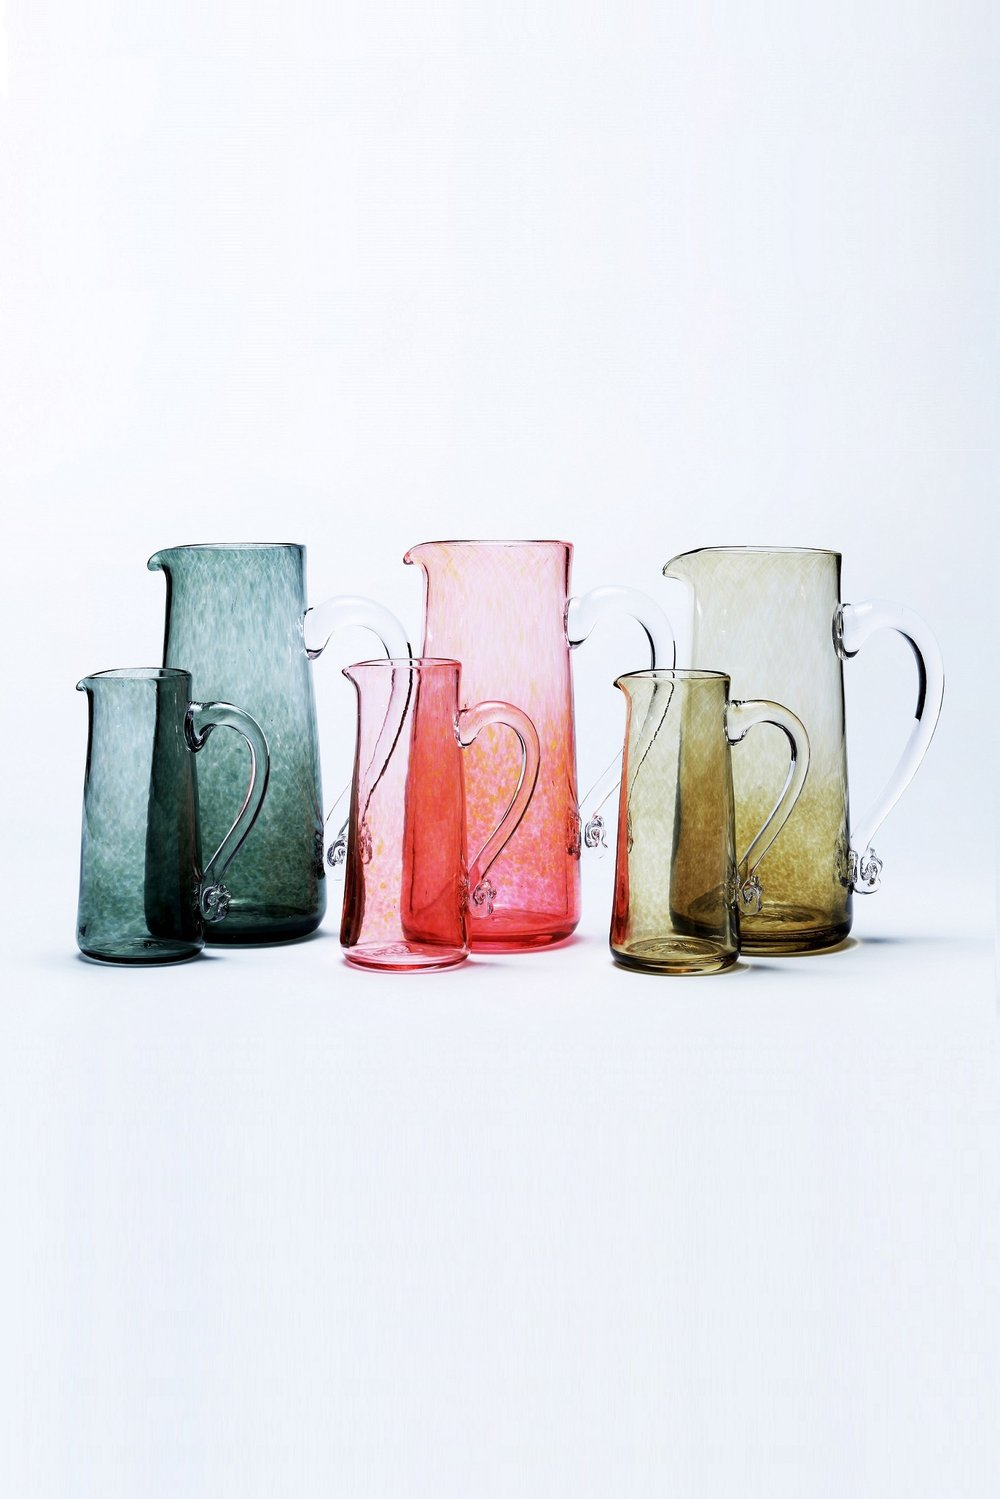 Monochrome Jugs